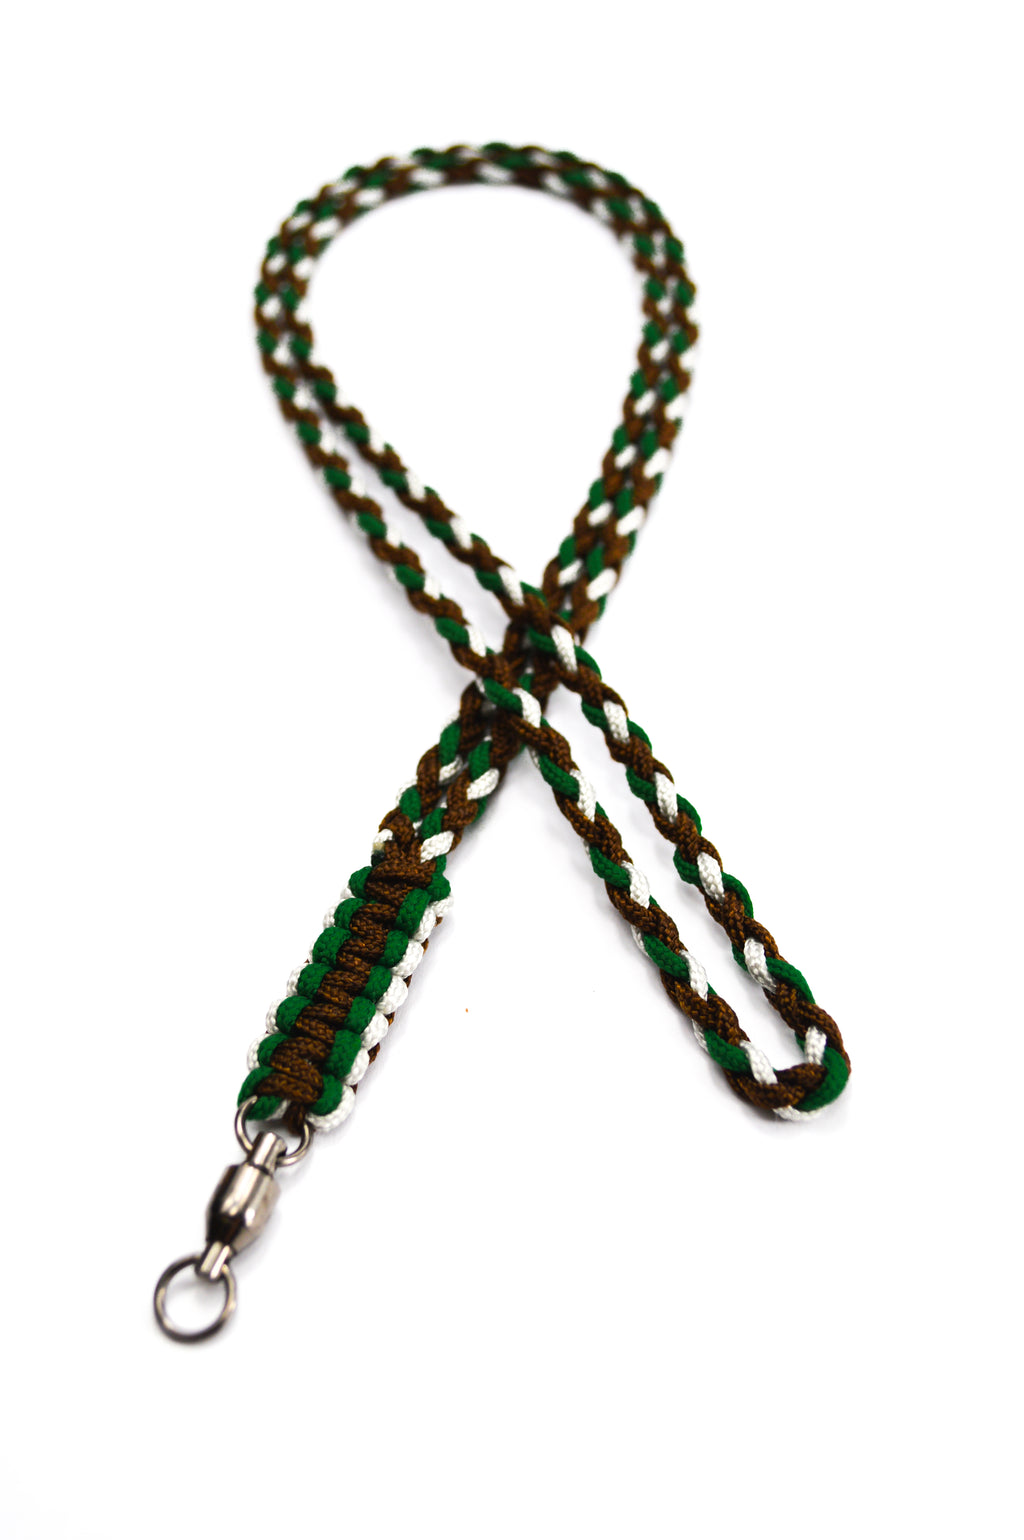 Special Edition Lanyard - The Mallard